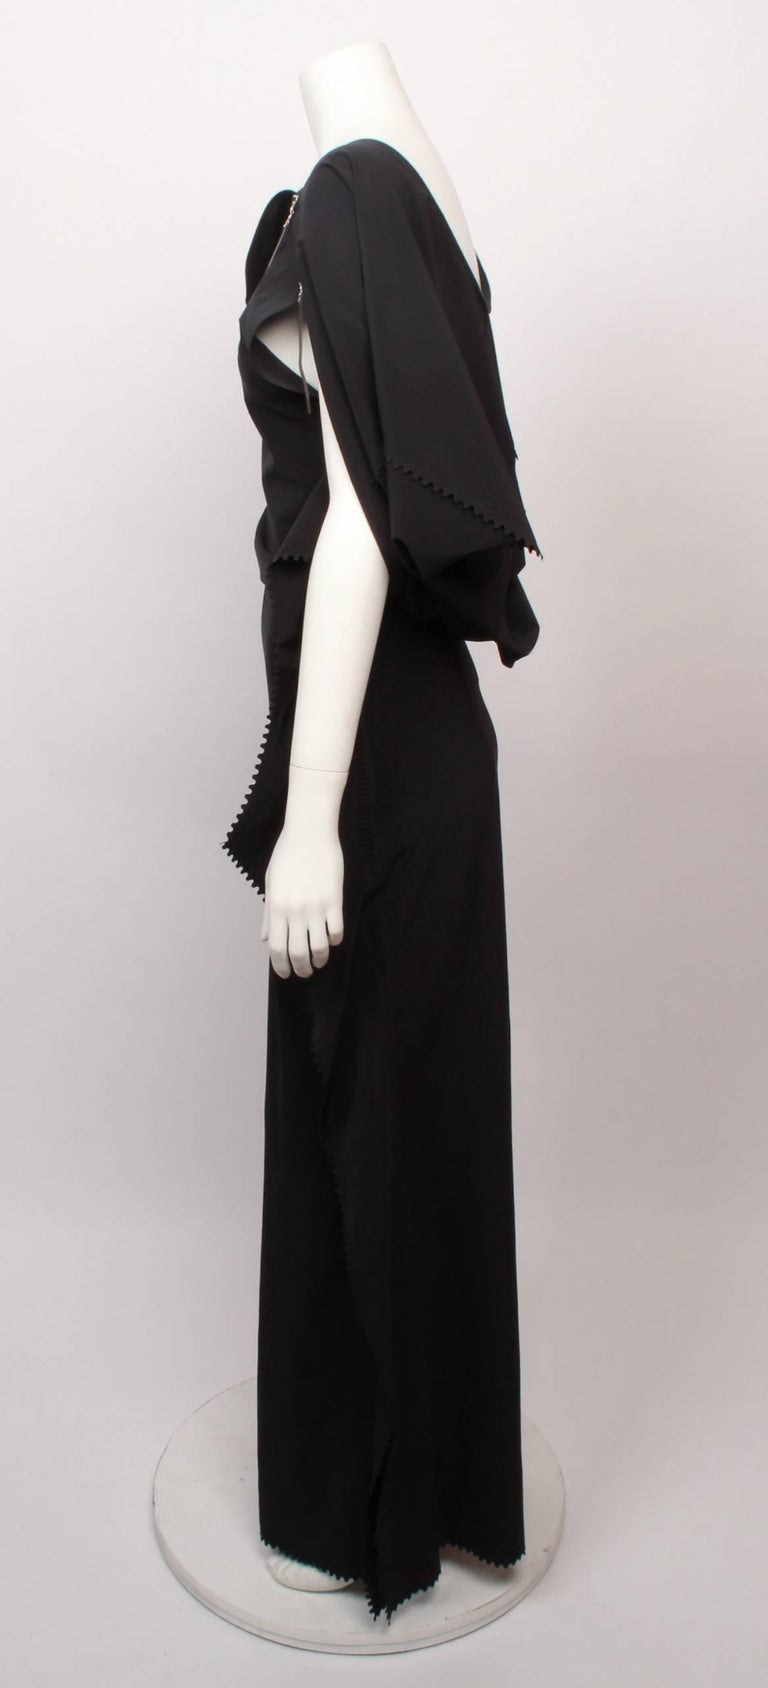 Issey Miyake Long Black Art Wear Dress  M In Good Condition For Sale In Melbourne, Victoria